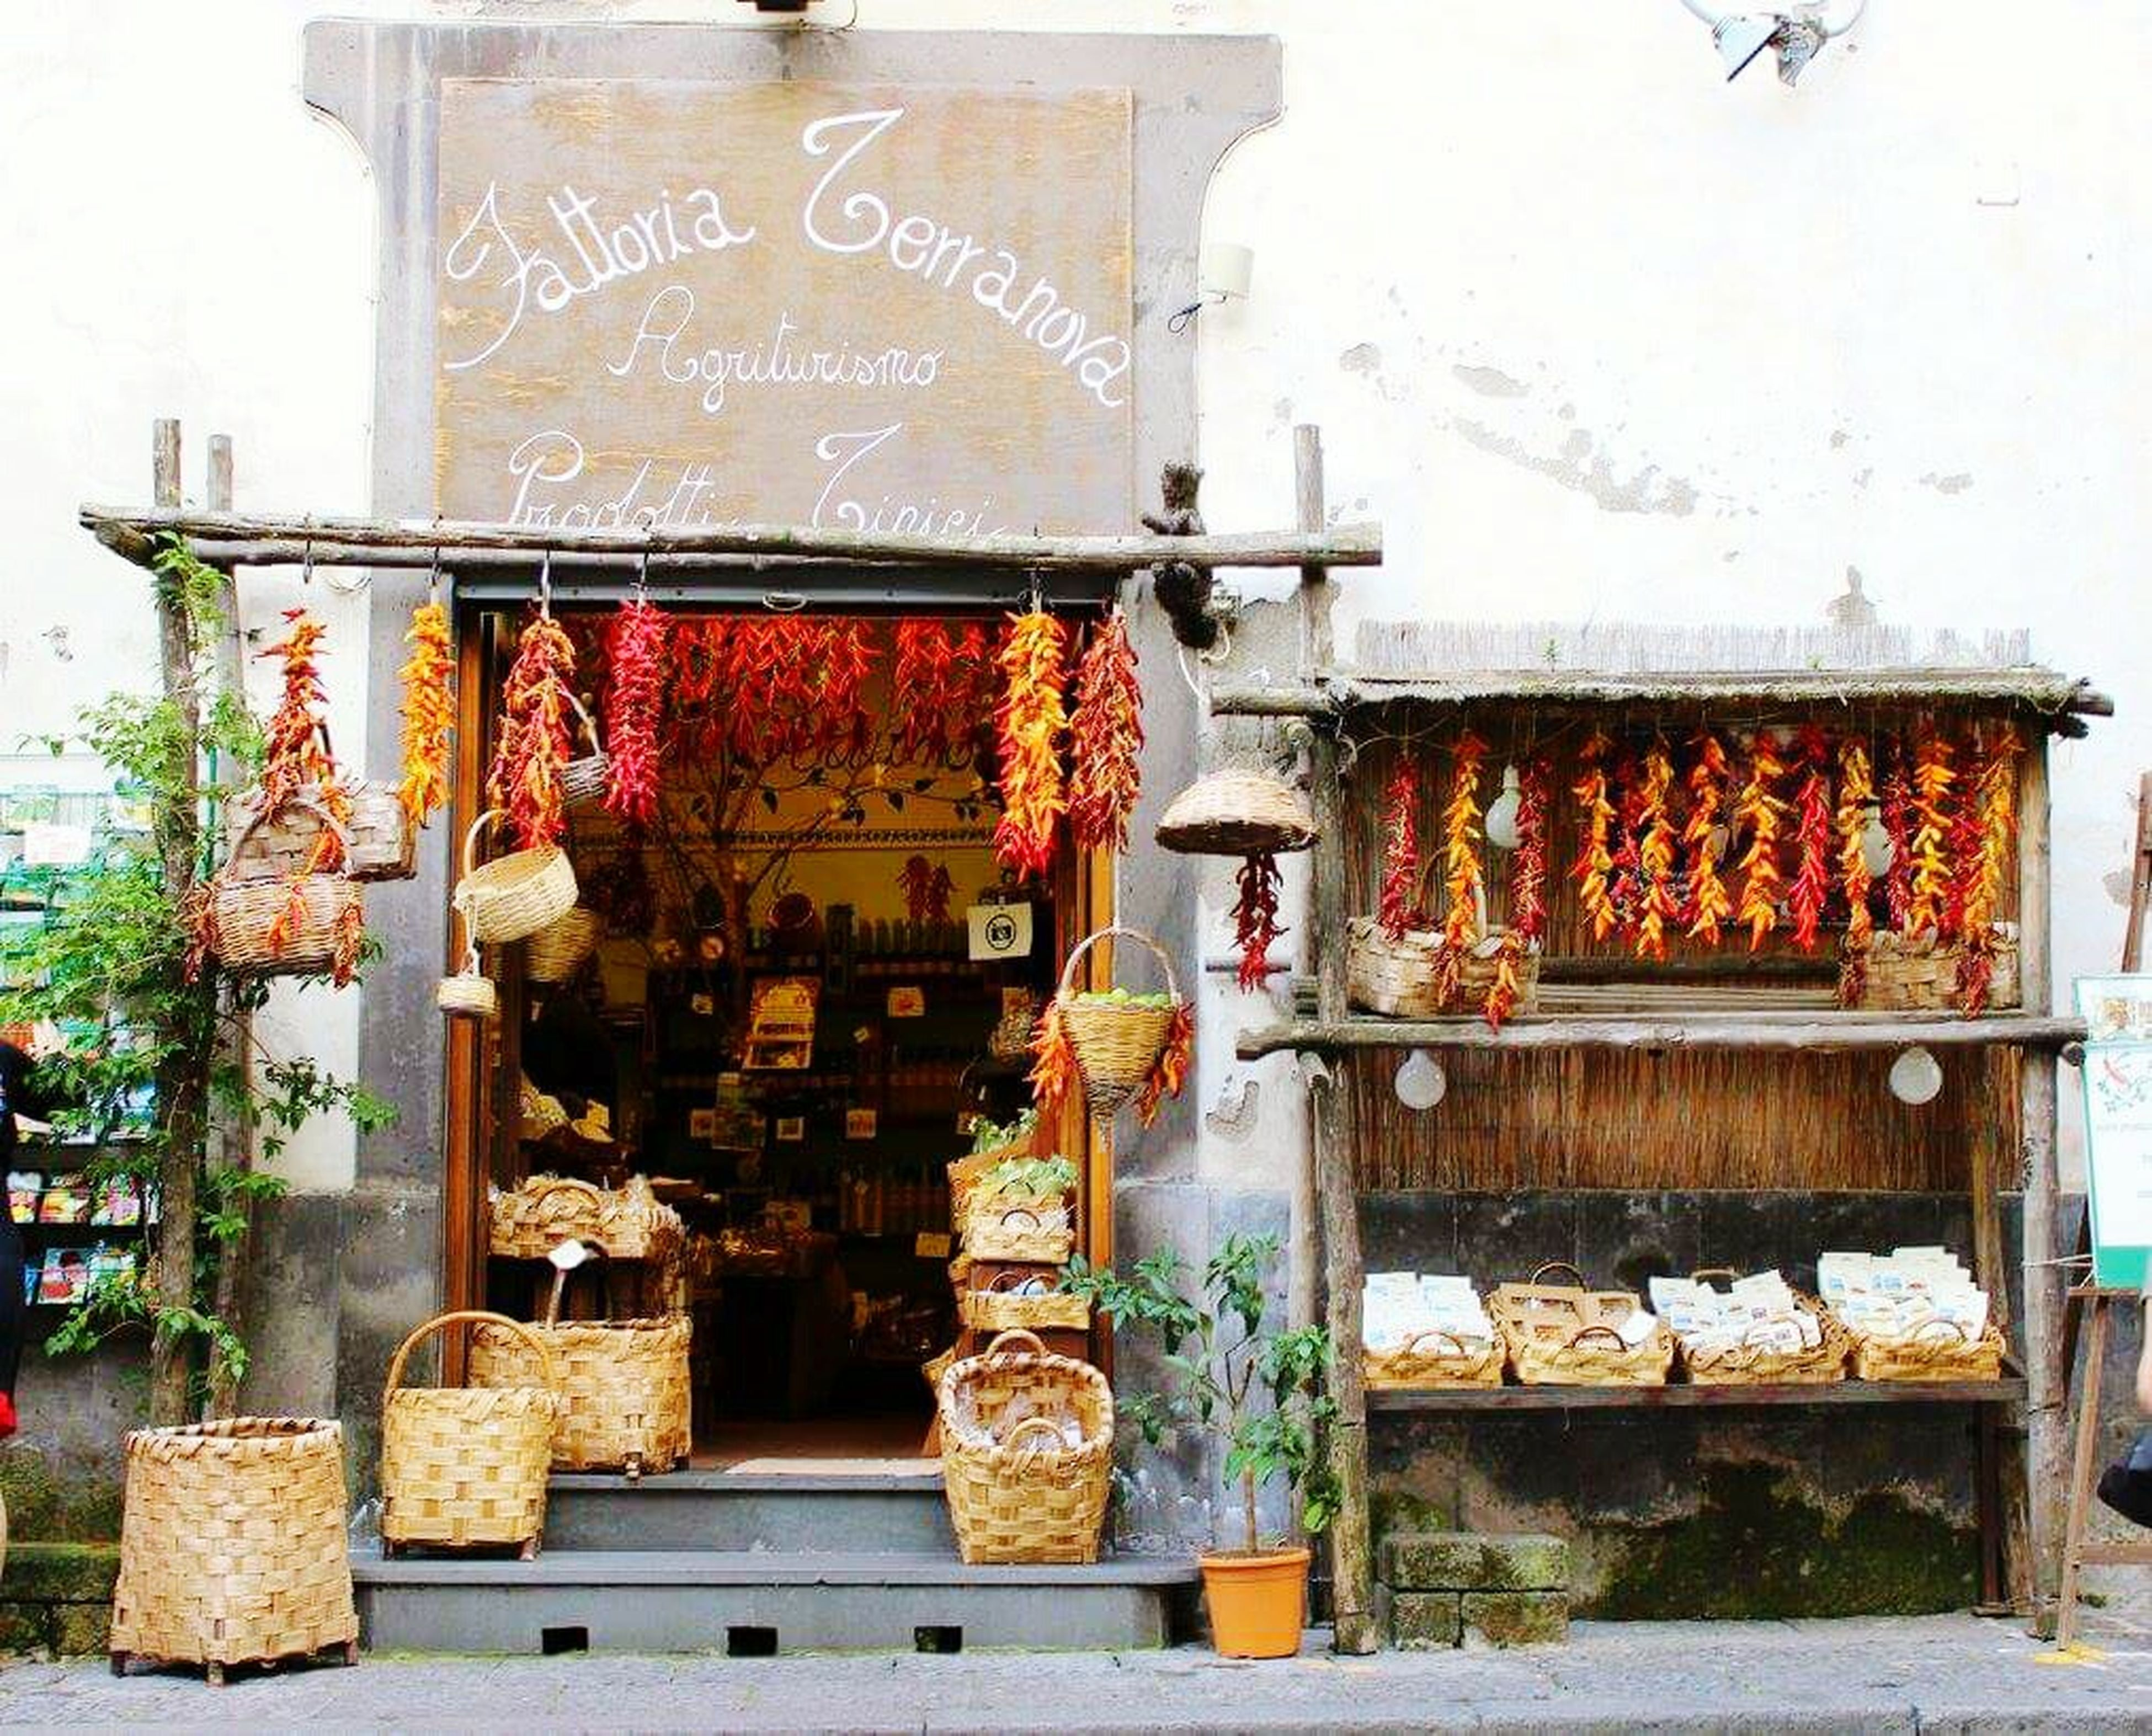 retail, for sale, building exterior, food, market, text, food and drink, market stall, architecture, built structure, store, variation, western script, abundance, display, outdoors, wall - building feature, day, large group of objects, healthy eating